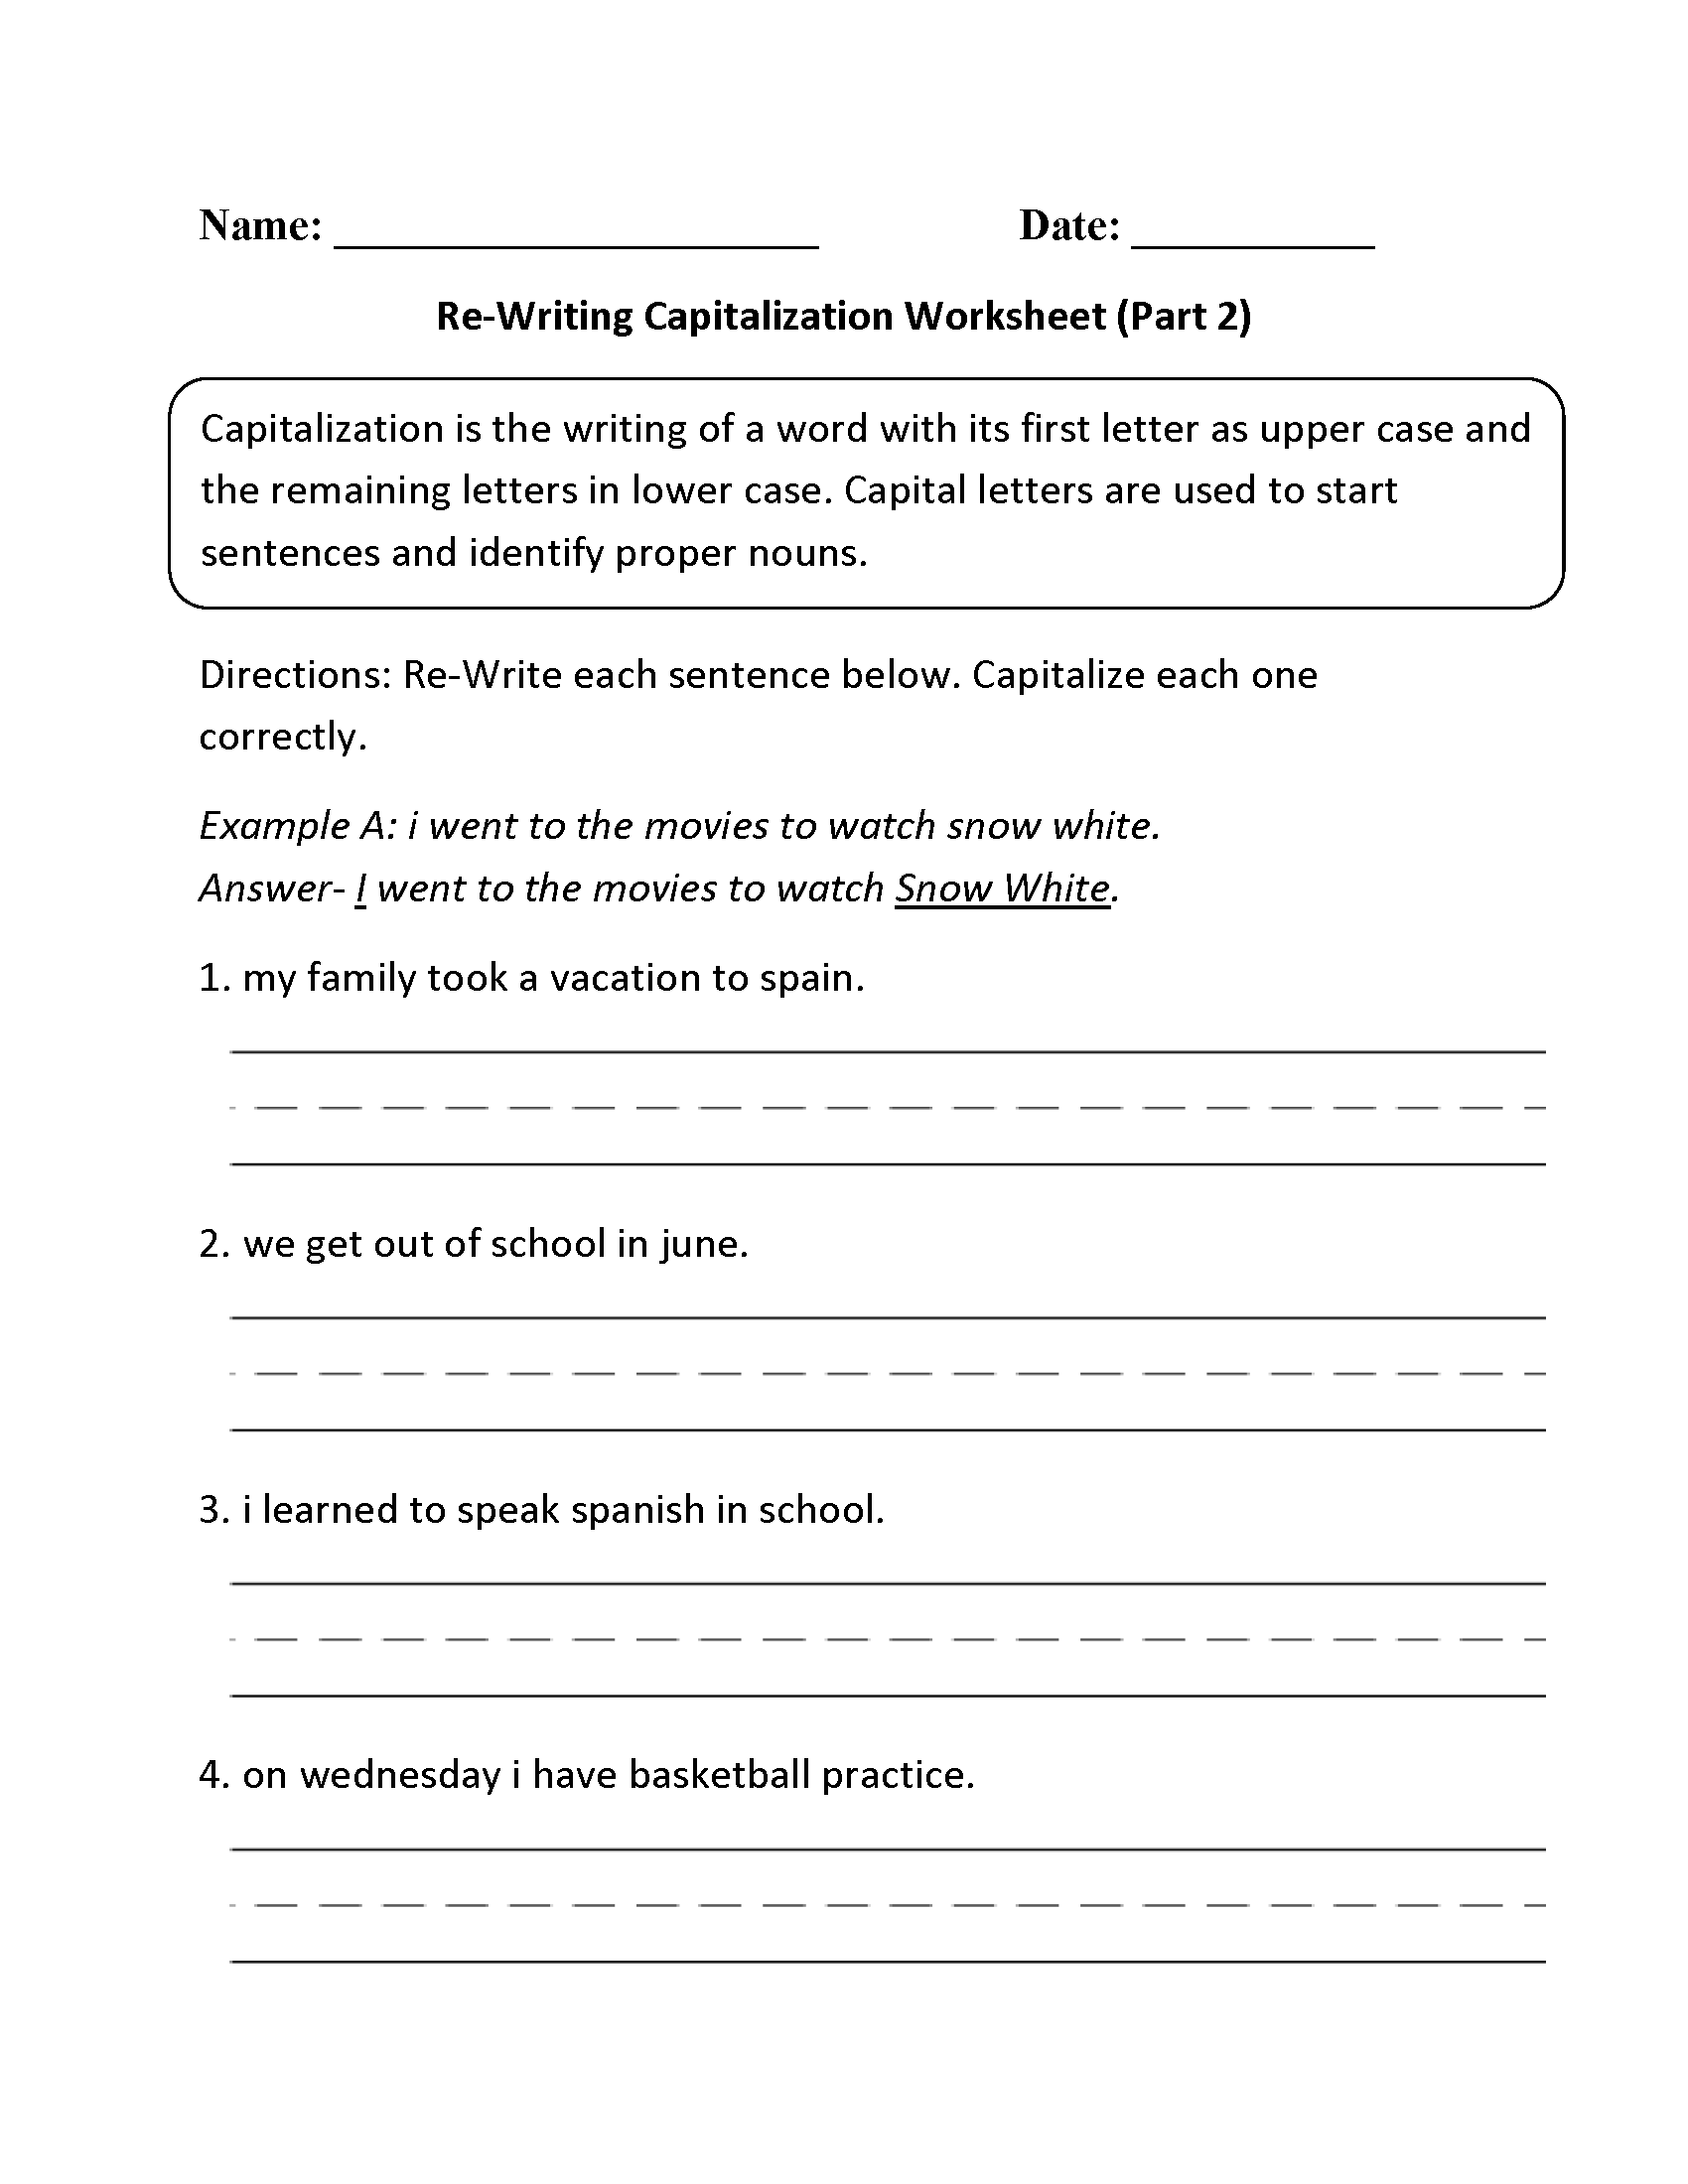 Re-Writing Capitalization Worksheet Part 2 | English | Pinterest